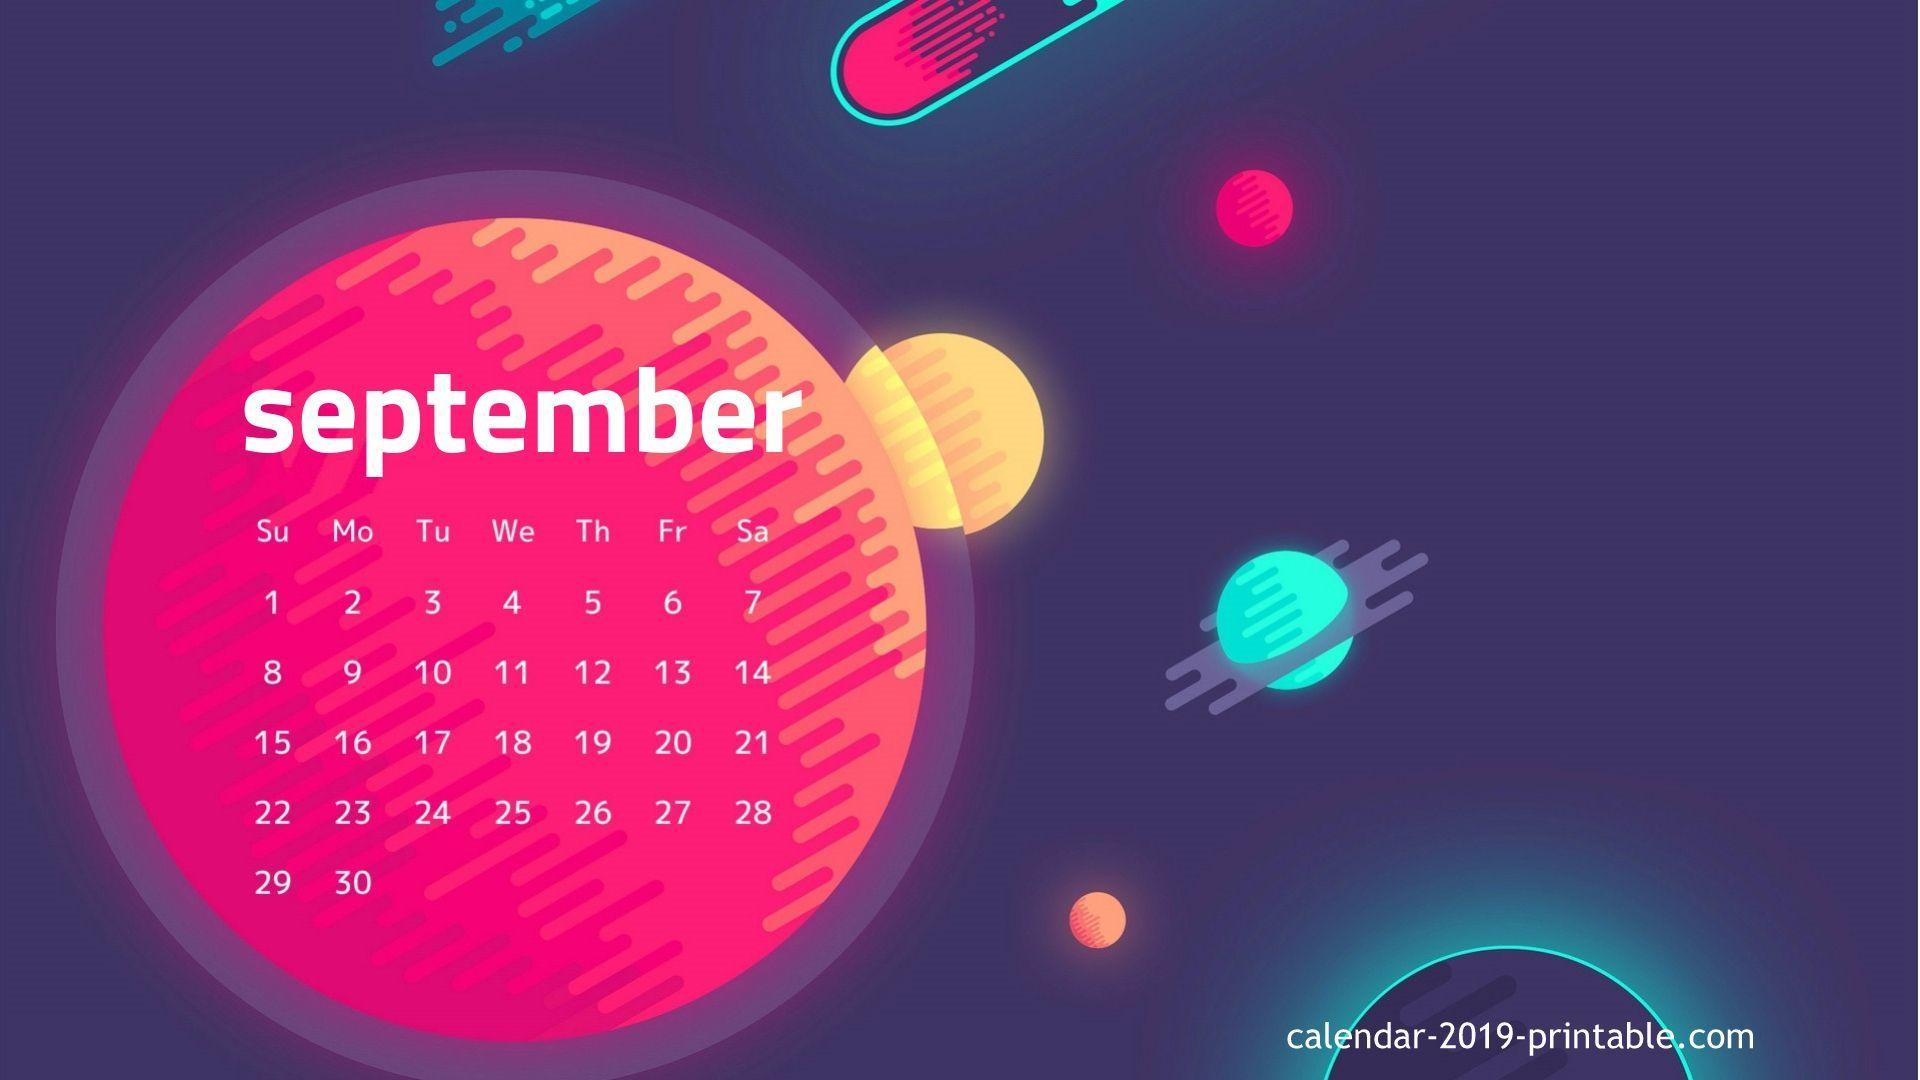 september 2019 hd wallpapers calendar